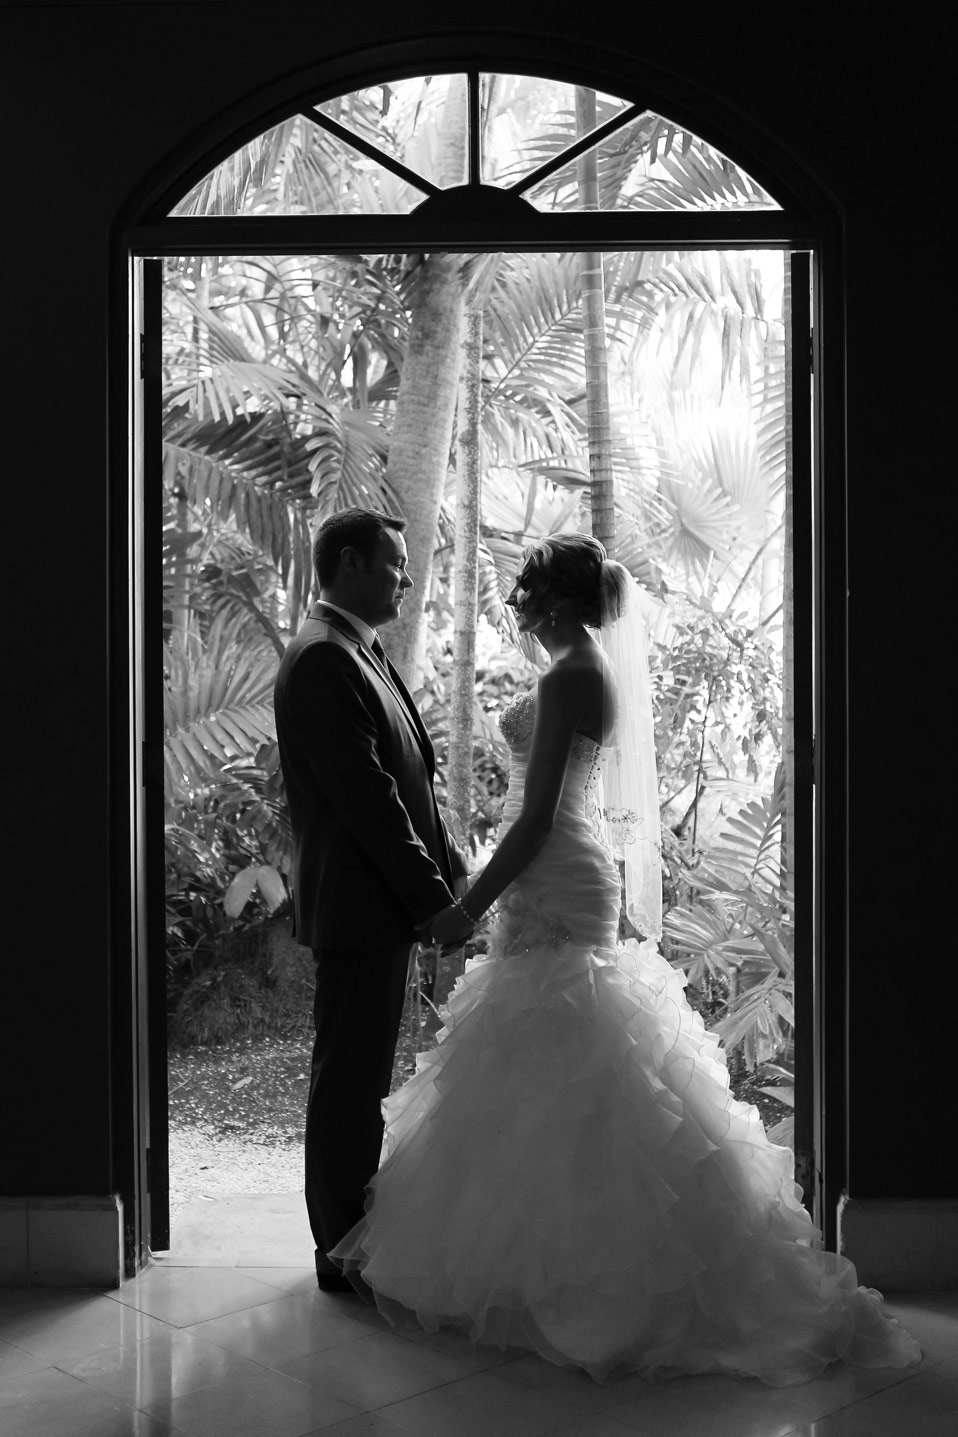 jamaica-milwaukee-destination-wedding-ruthie-hauge-photography-42.jpg